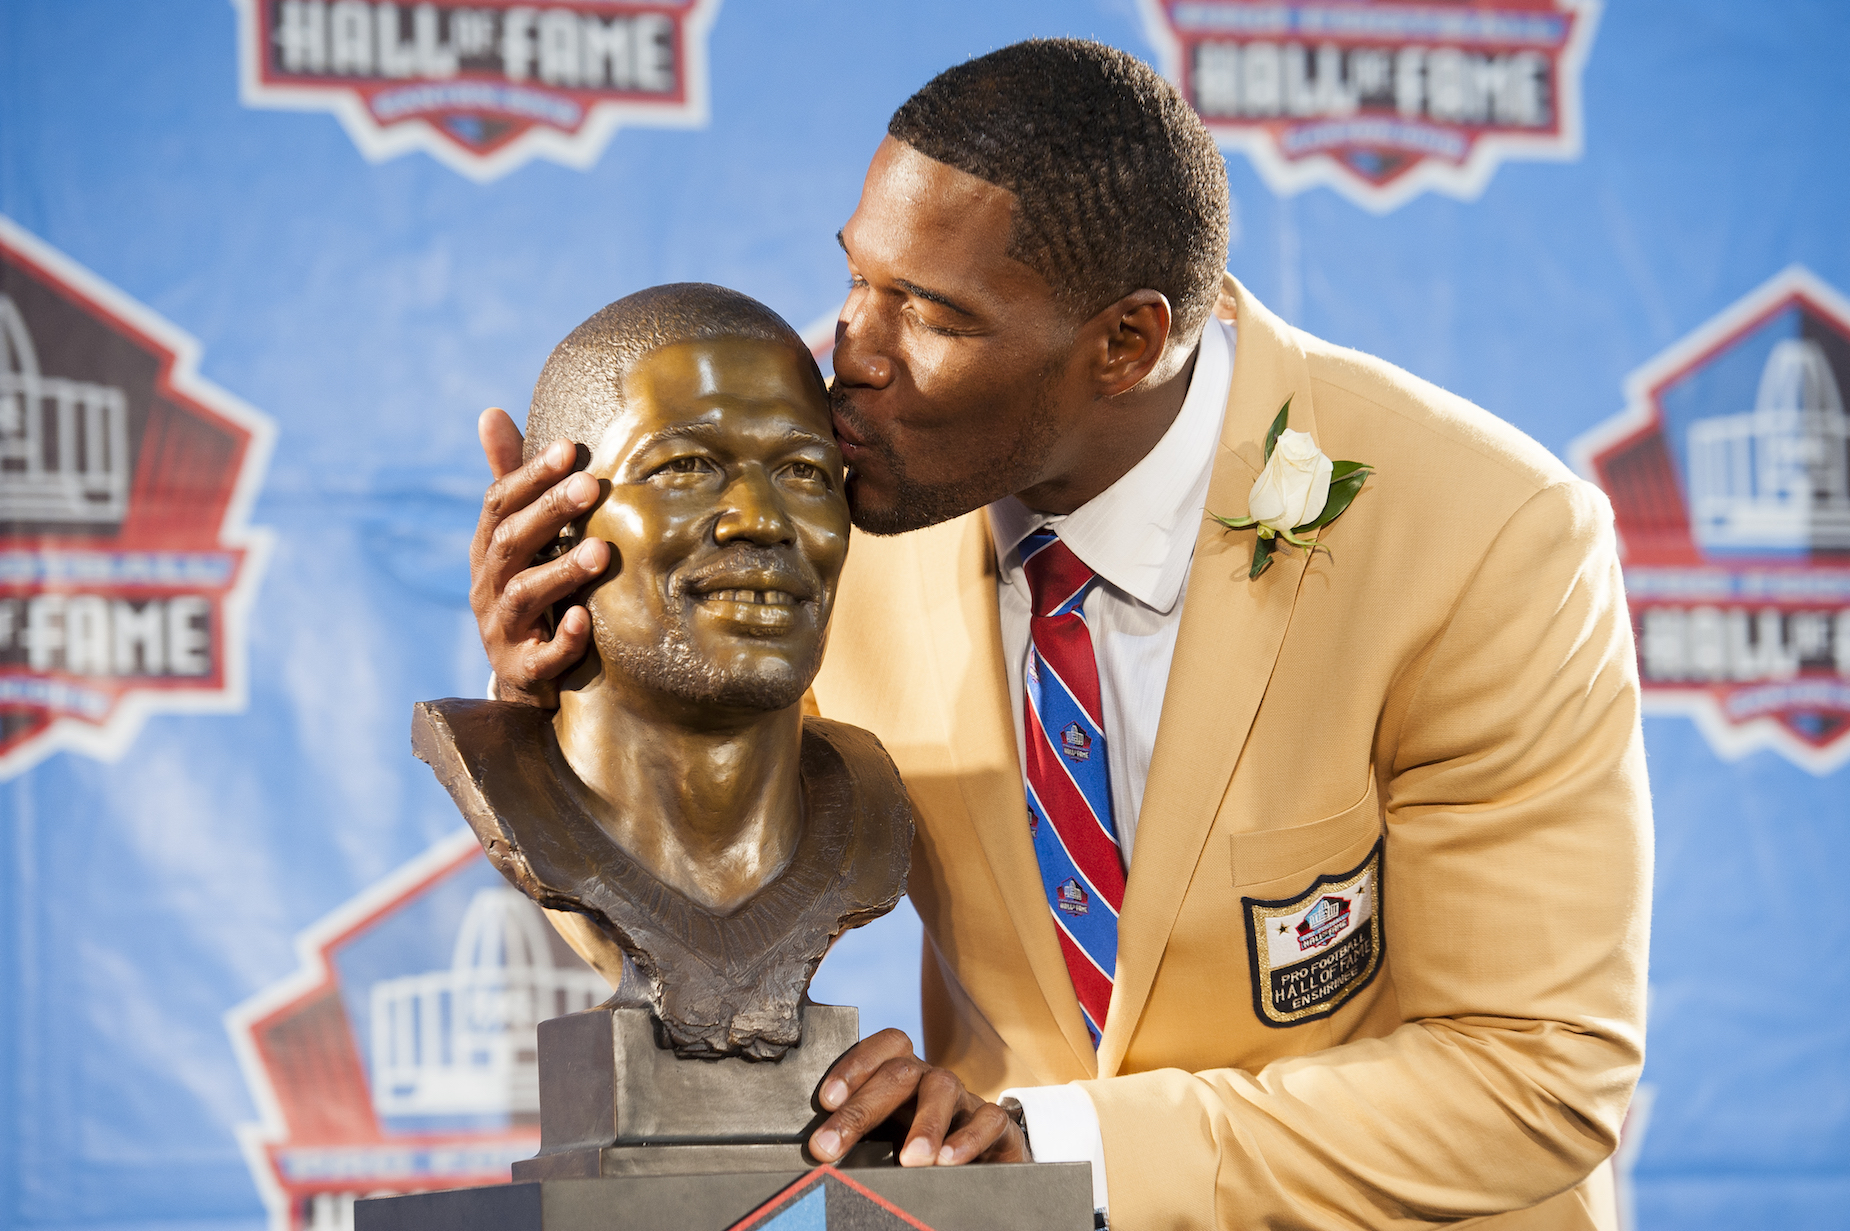 Michael Strahan Is A Super Bowl Champion With a $65 Million Fortune, but His 'Most Valuable Possession' Is Humble Childhood Purchase